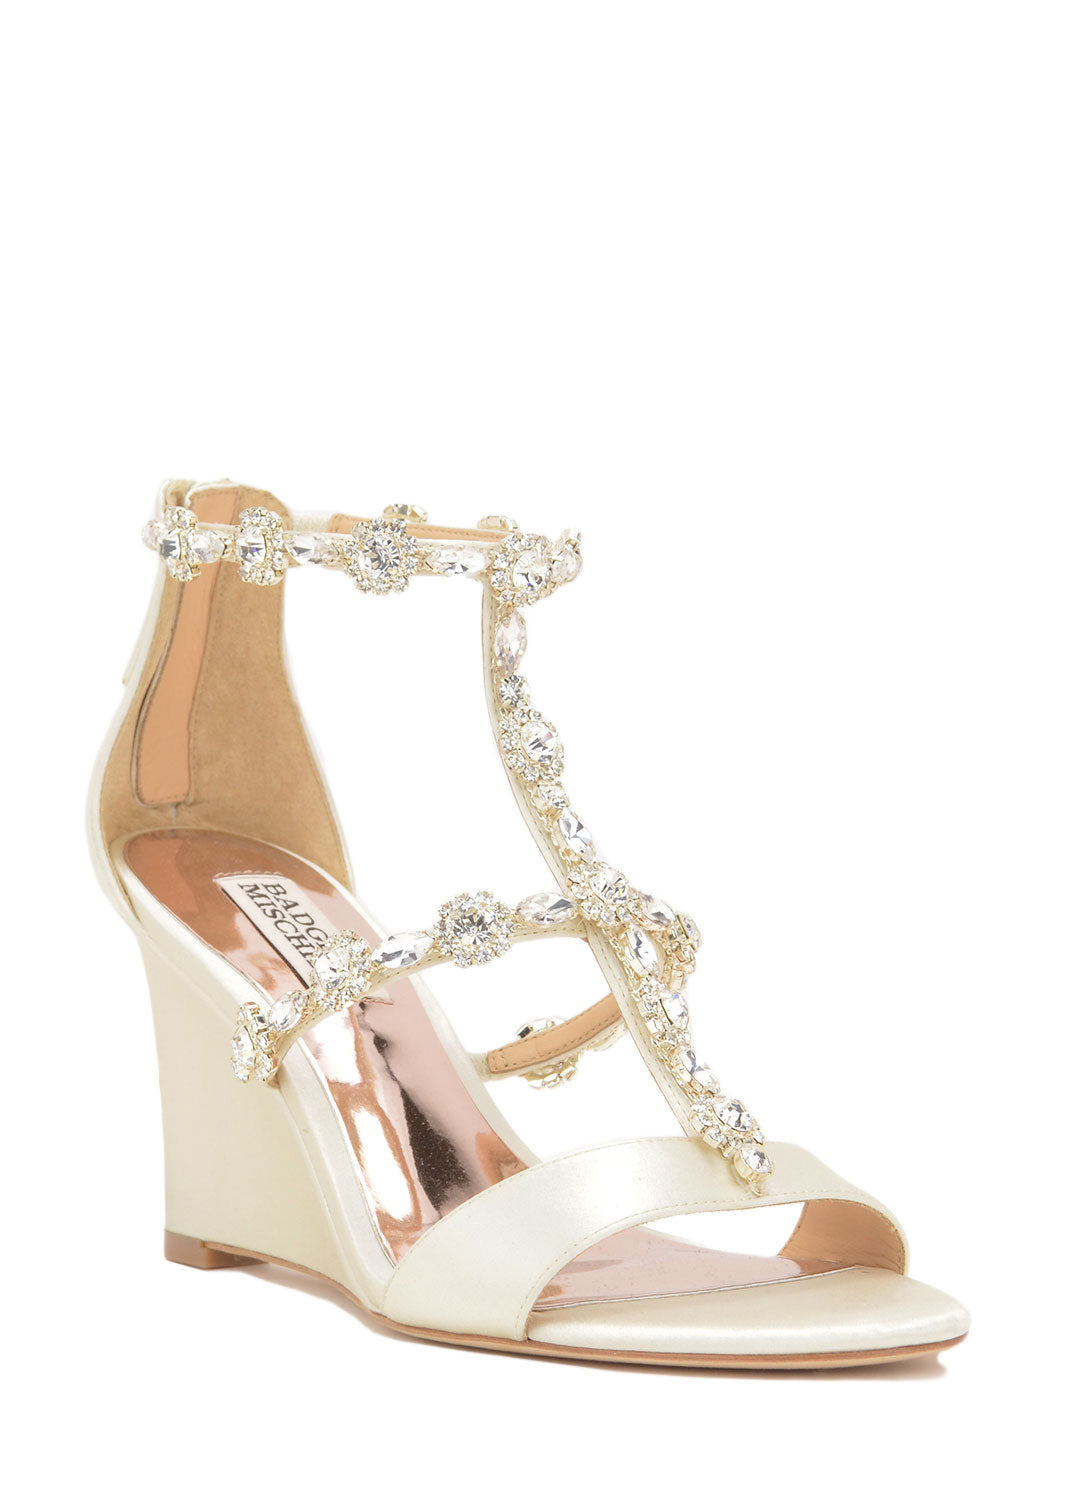 Tabby - Shoes - Badgley Mischka - Eternal Bridal